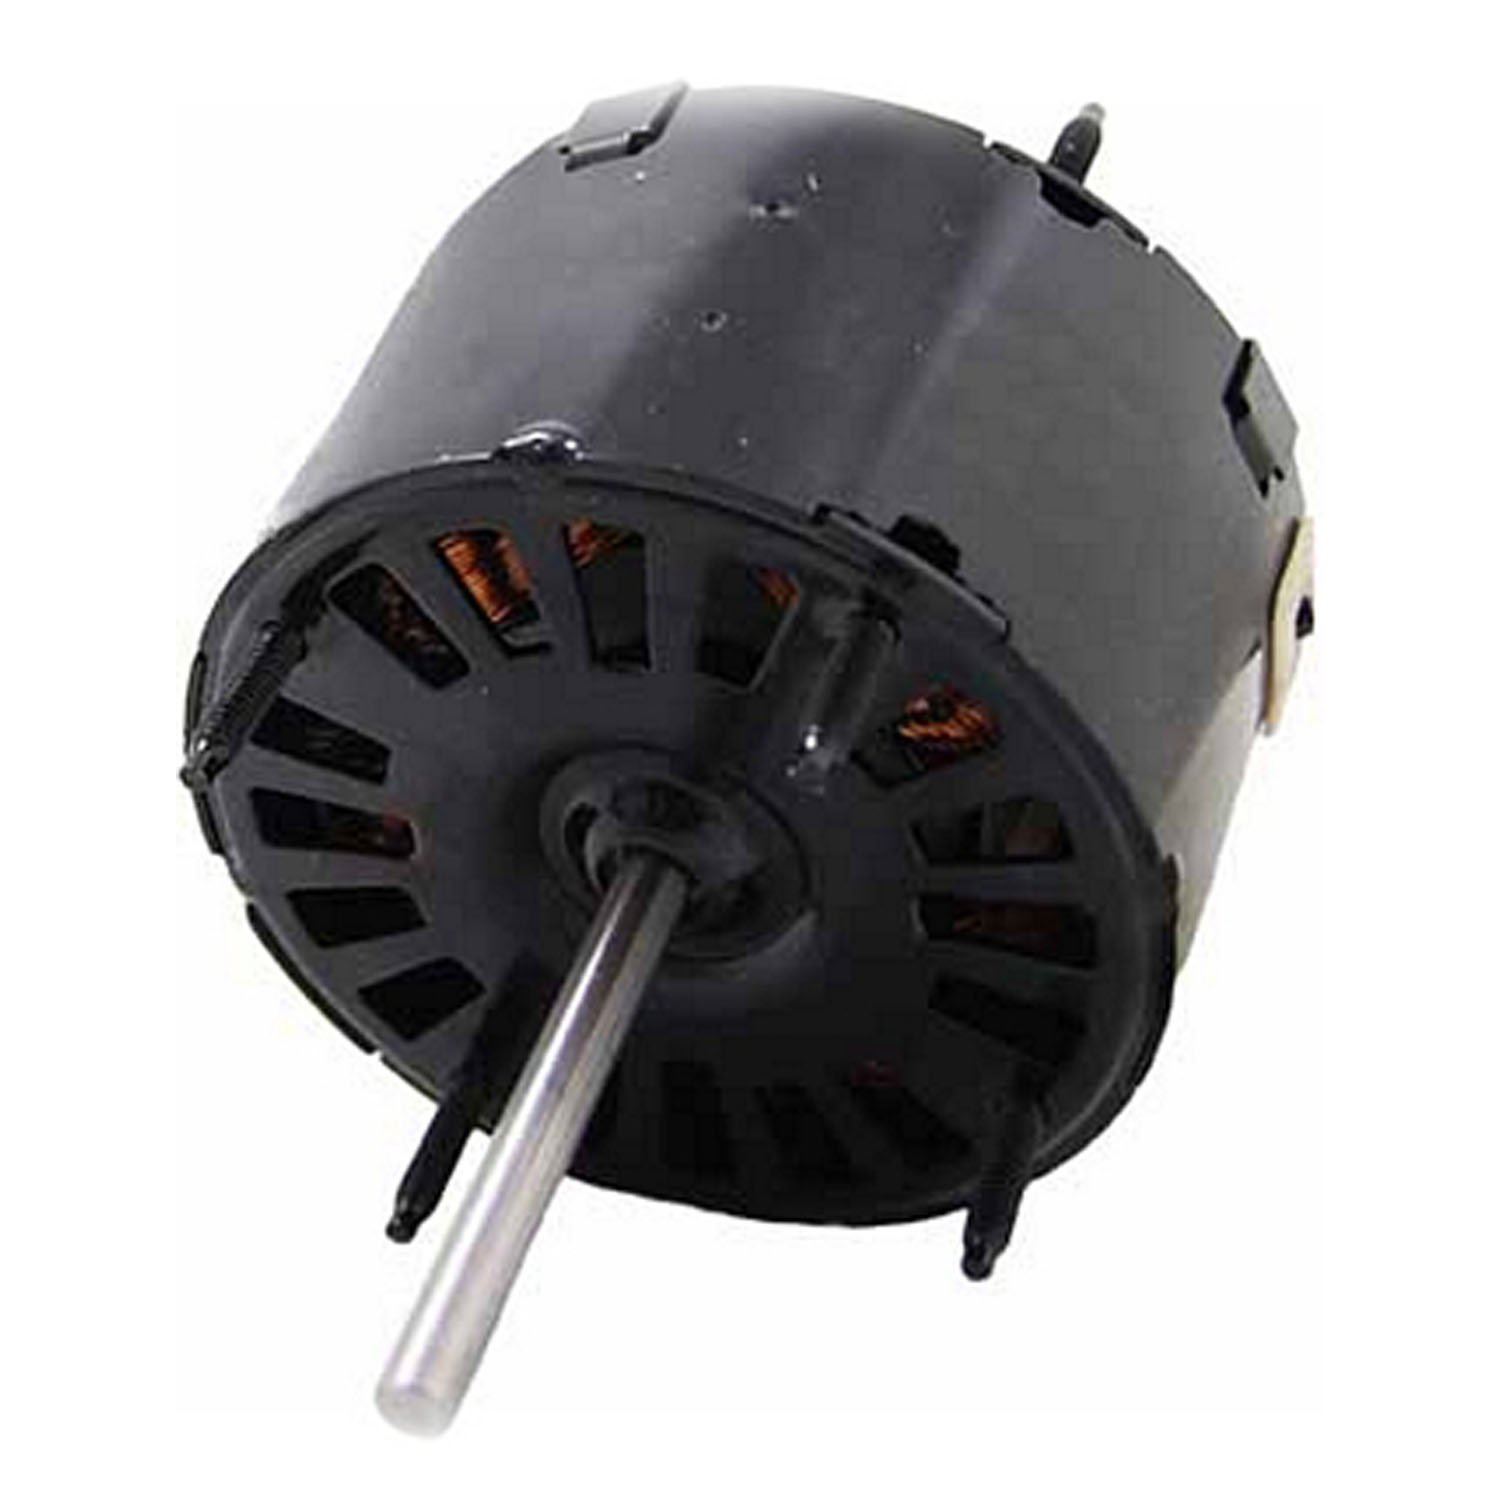 3.3 Inch Diameter Motor 230 Volts 1550 RPM